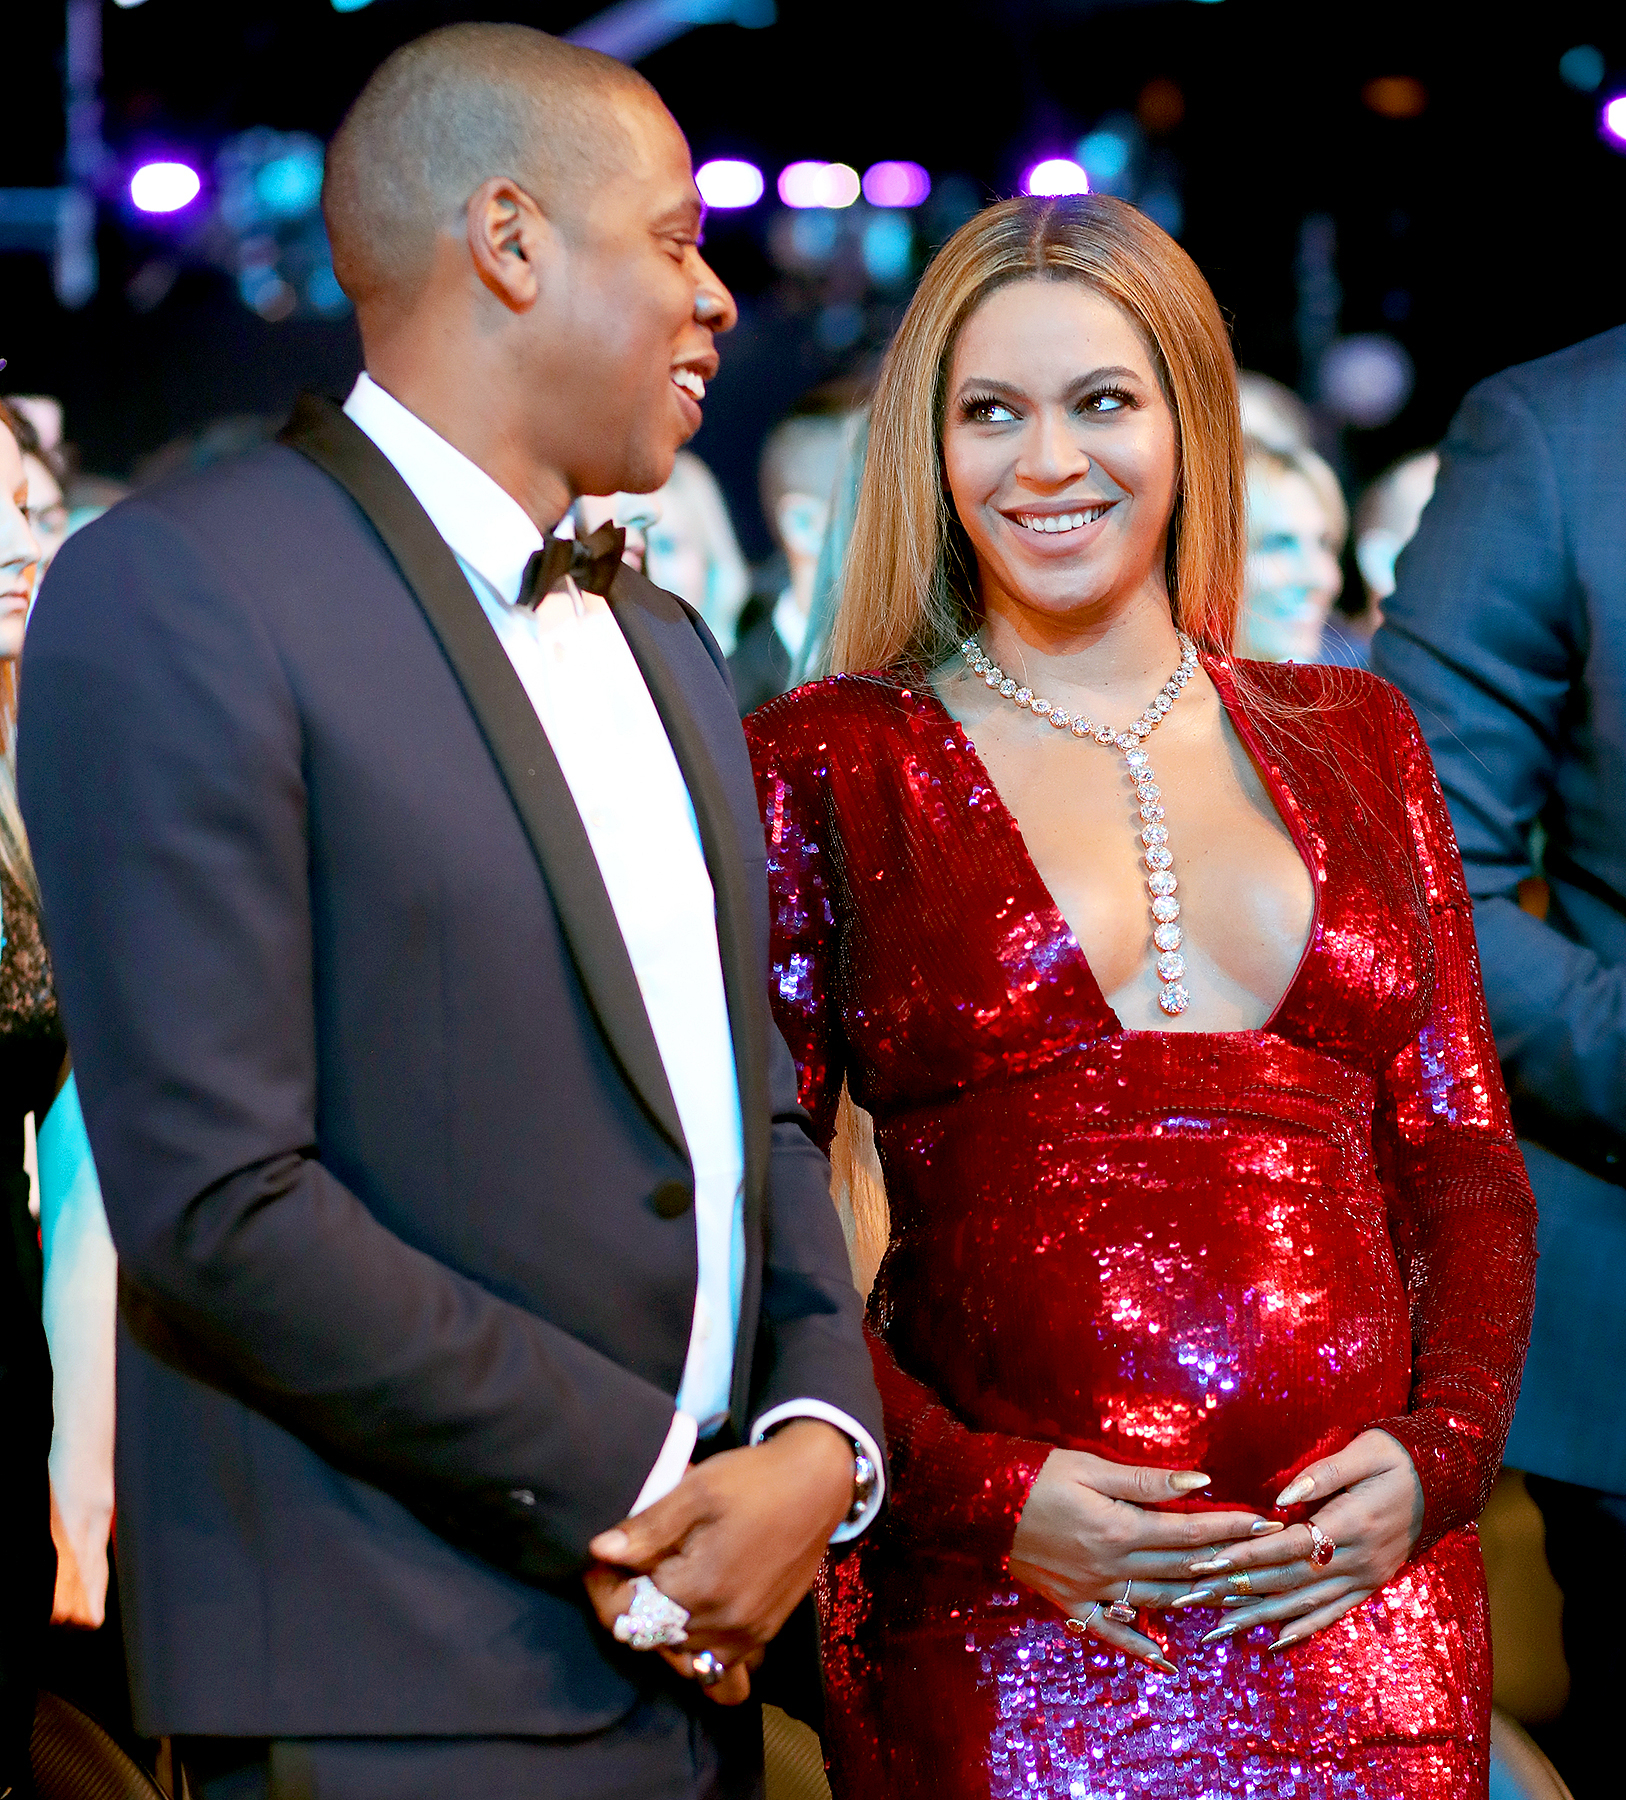 Jay-Z and singer Beyonce during The 59th GRAMMY Awards at STAPLES Center on February 12, 2017 in Los Angeles, California.